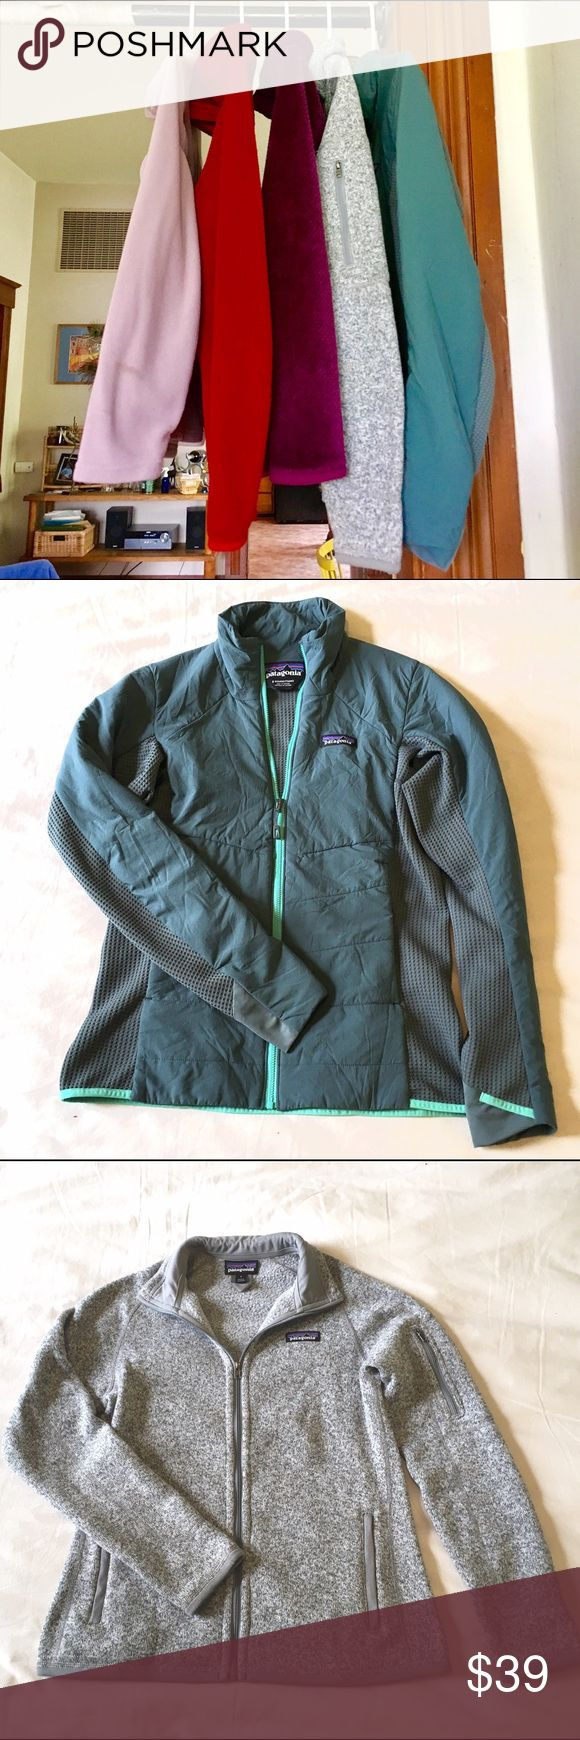 🌺 BOGO 50% OFF Patagonia Jackets 🌺 I'm cleaning out my closet for spring and am having a huge buy one get one half off sale THIS WEEK ONLY! Items for sale: BRAND NEW Patagonia Nano Air Hybrid Jacket S ($149), BRAND NEW Patagonia Better Sweater Full Zip Jacket S ($99), Patagonia Re-Tool Snap-T Fleece S ($69), Eddie Bauer Full Zip Fleece Jacket PXS ($39) Patagonia Tops Sweatshirts & Hoodies